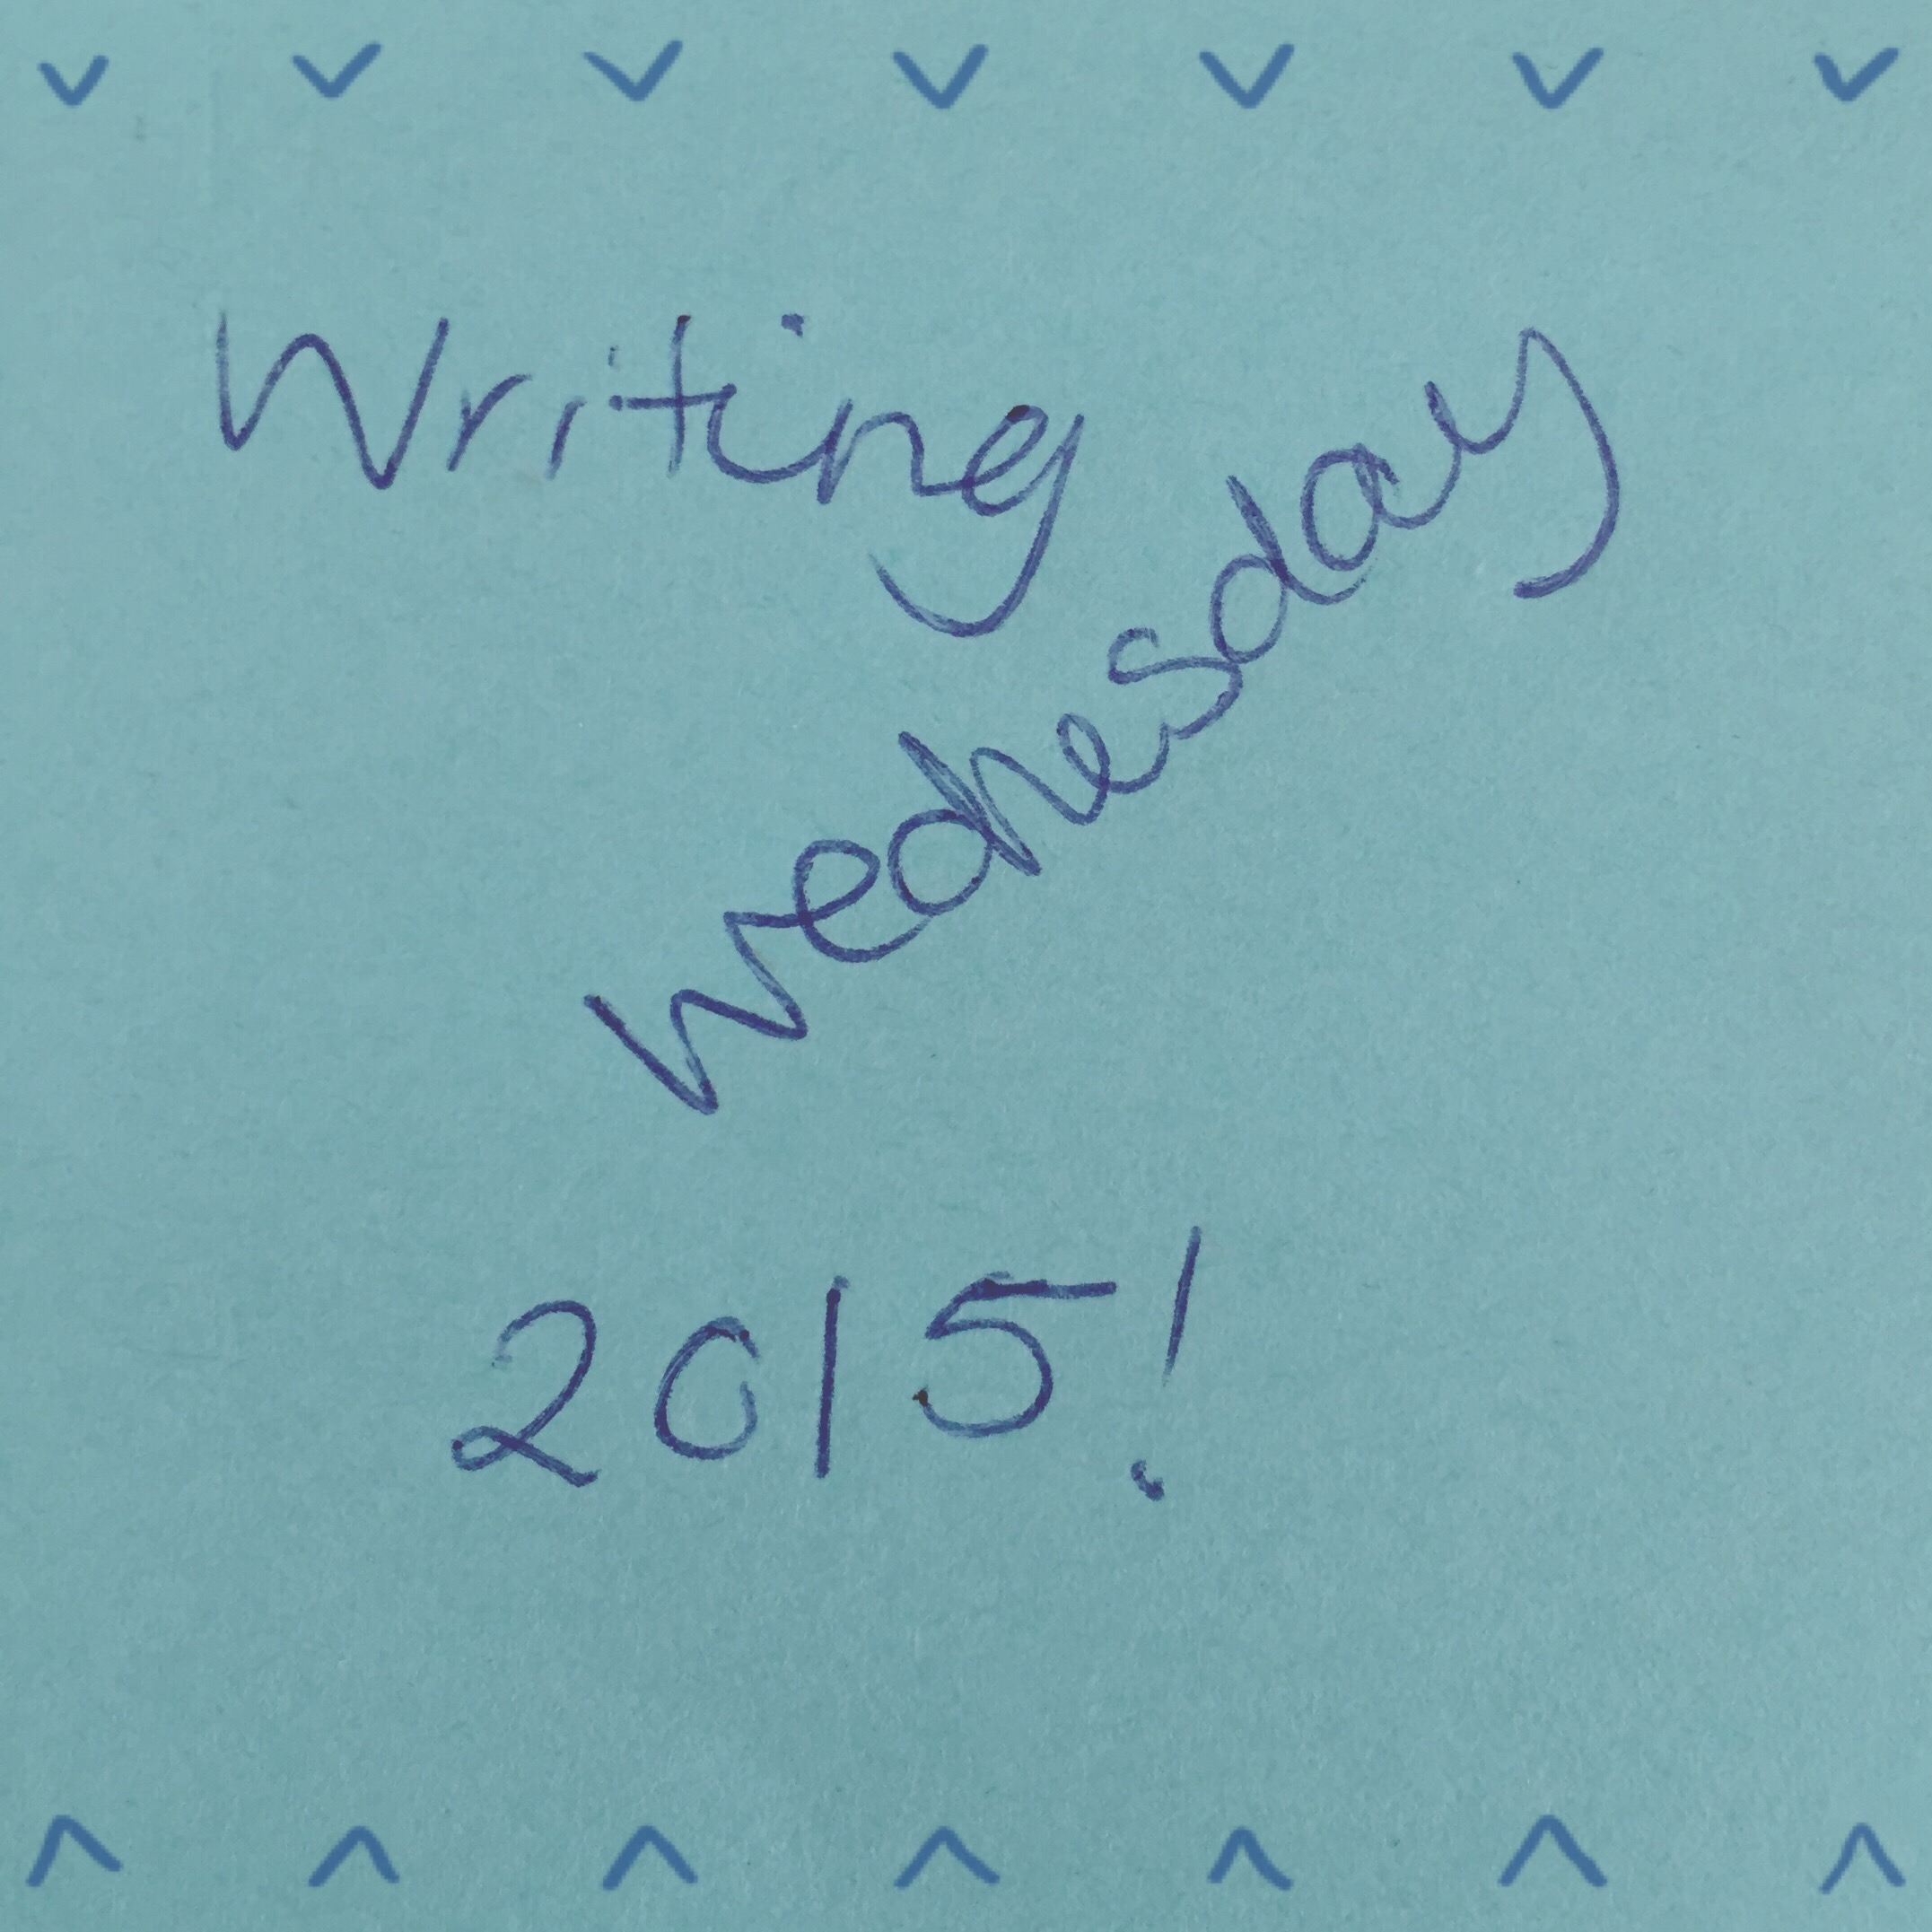 writing wednesday